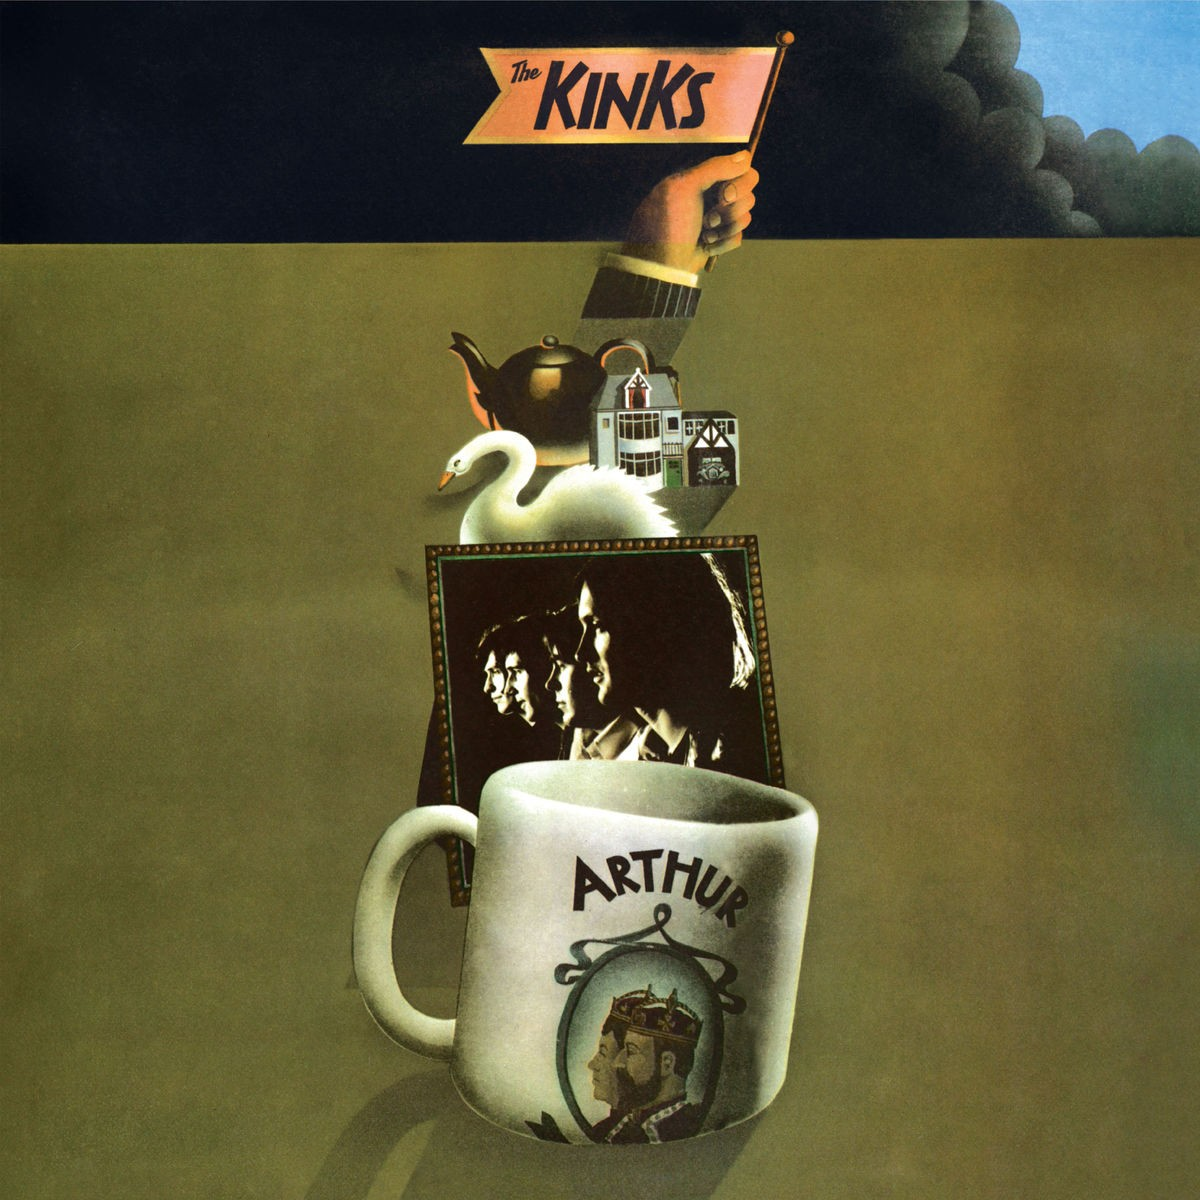 Kinks - Arthur (Or the Decline and Fall of the British Empire) VINYL - 541493963961